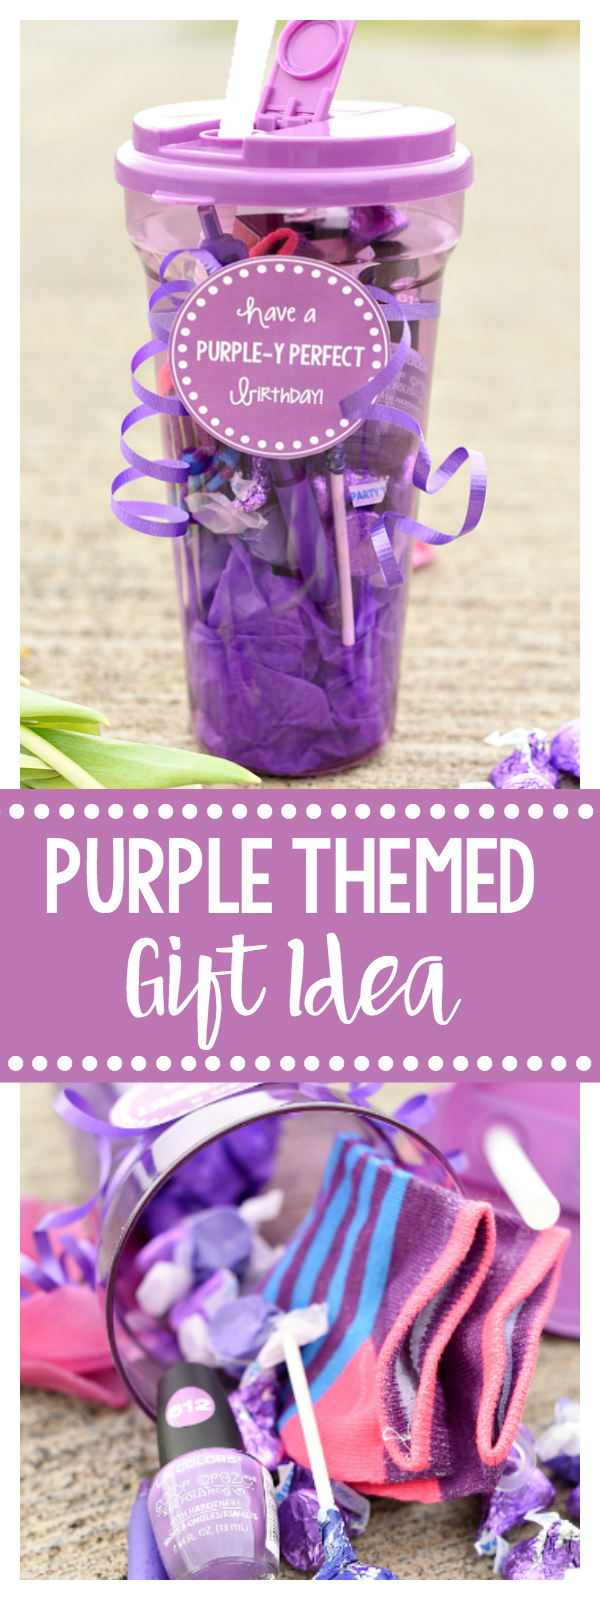 Purple Gift Idea for Friends on their Birthdays or Teachers